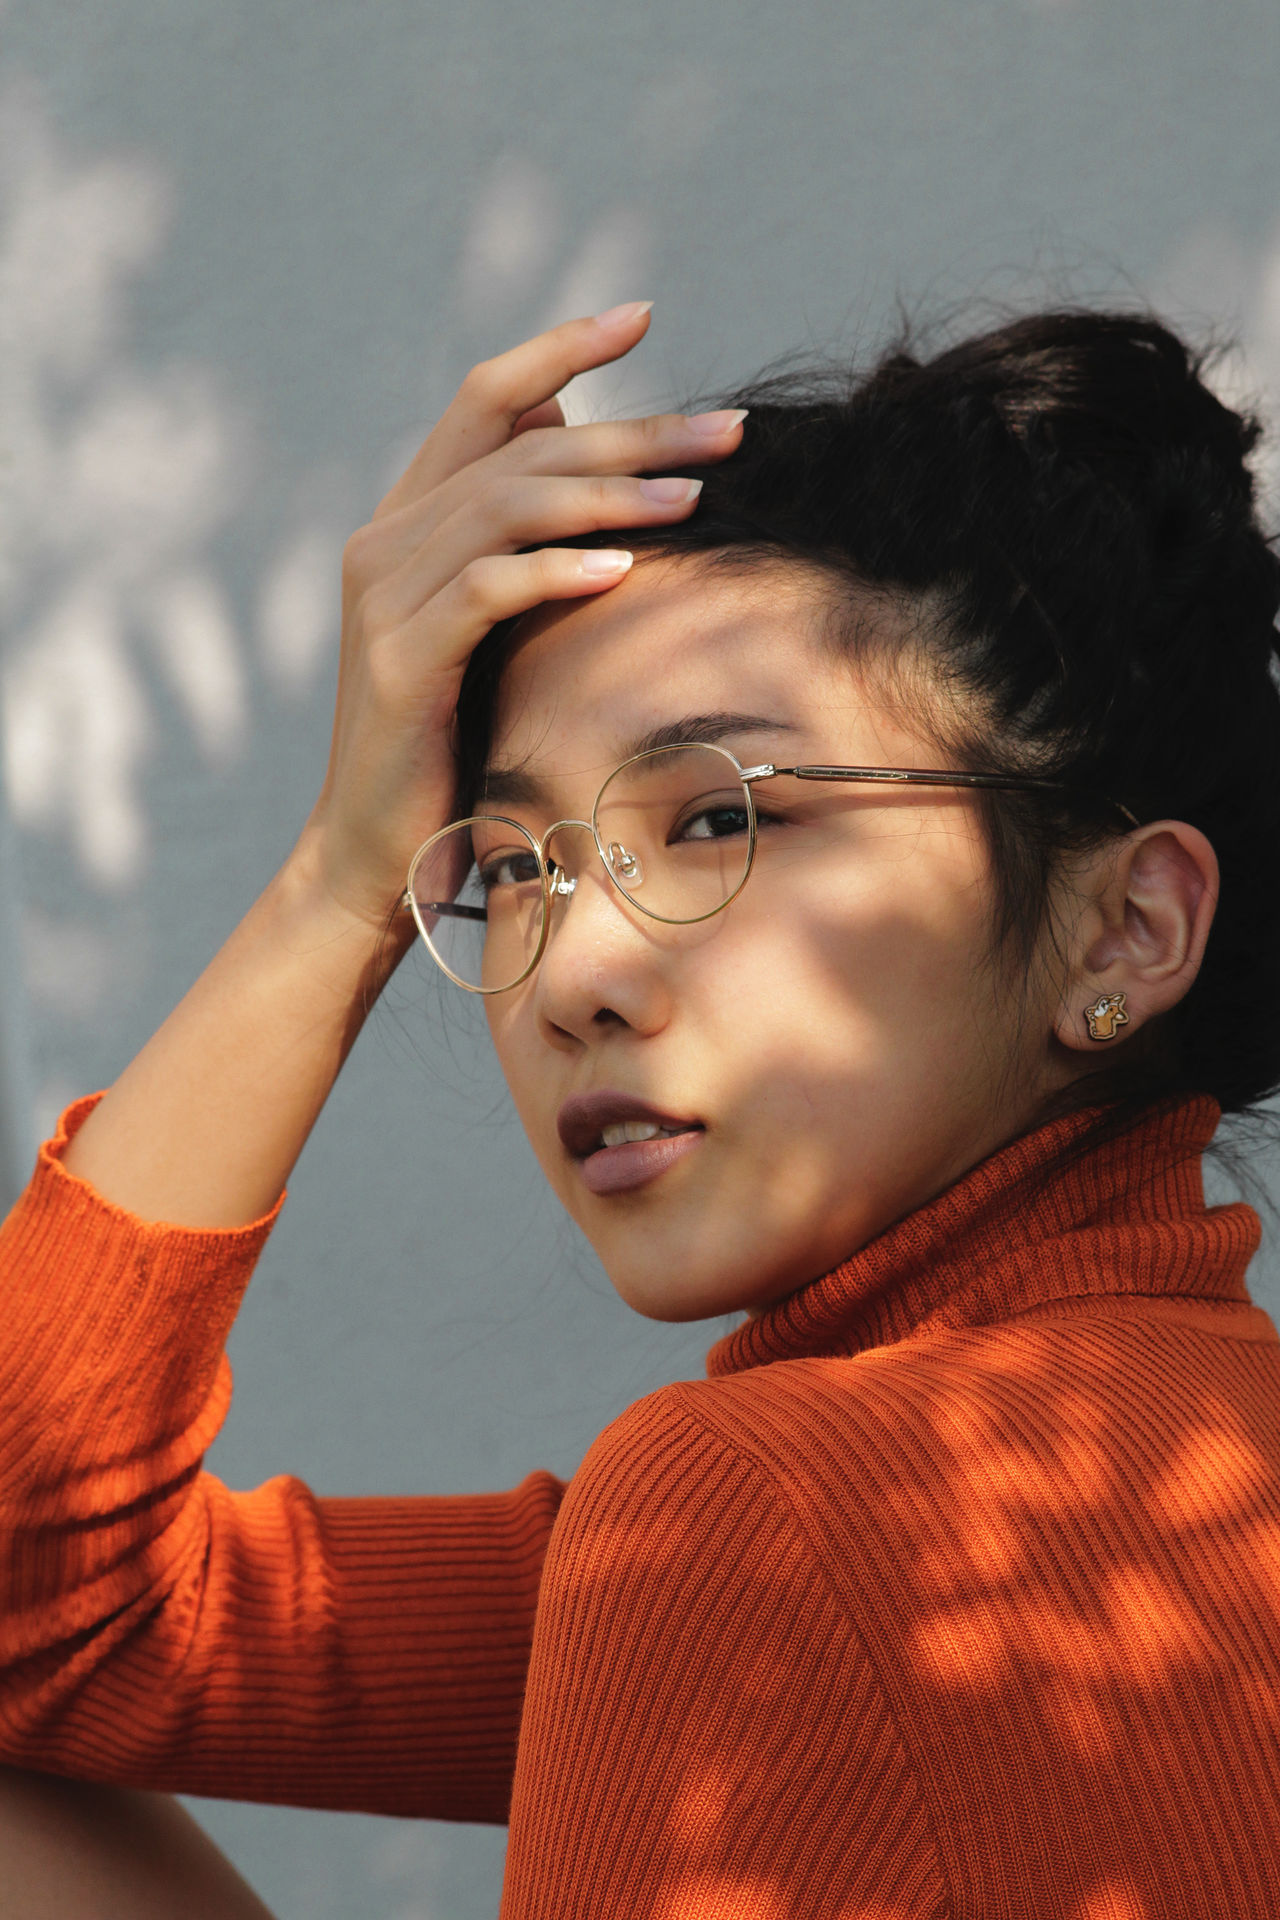 Turtleneck Asian Beautiful EyeEm Best Shots Faces of EyeEm Freshness Love Orange Portrait of a Woman Portraits Shadows & lights TheWeekOnEyeEM Tranquility Woman beauty in Nature close-up day face mood one person portrait real people shadow urban women young adult The Week on EyeEm